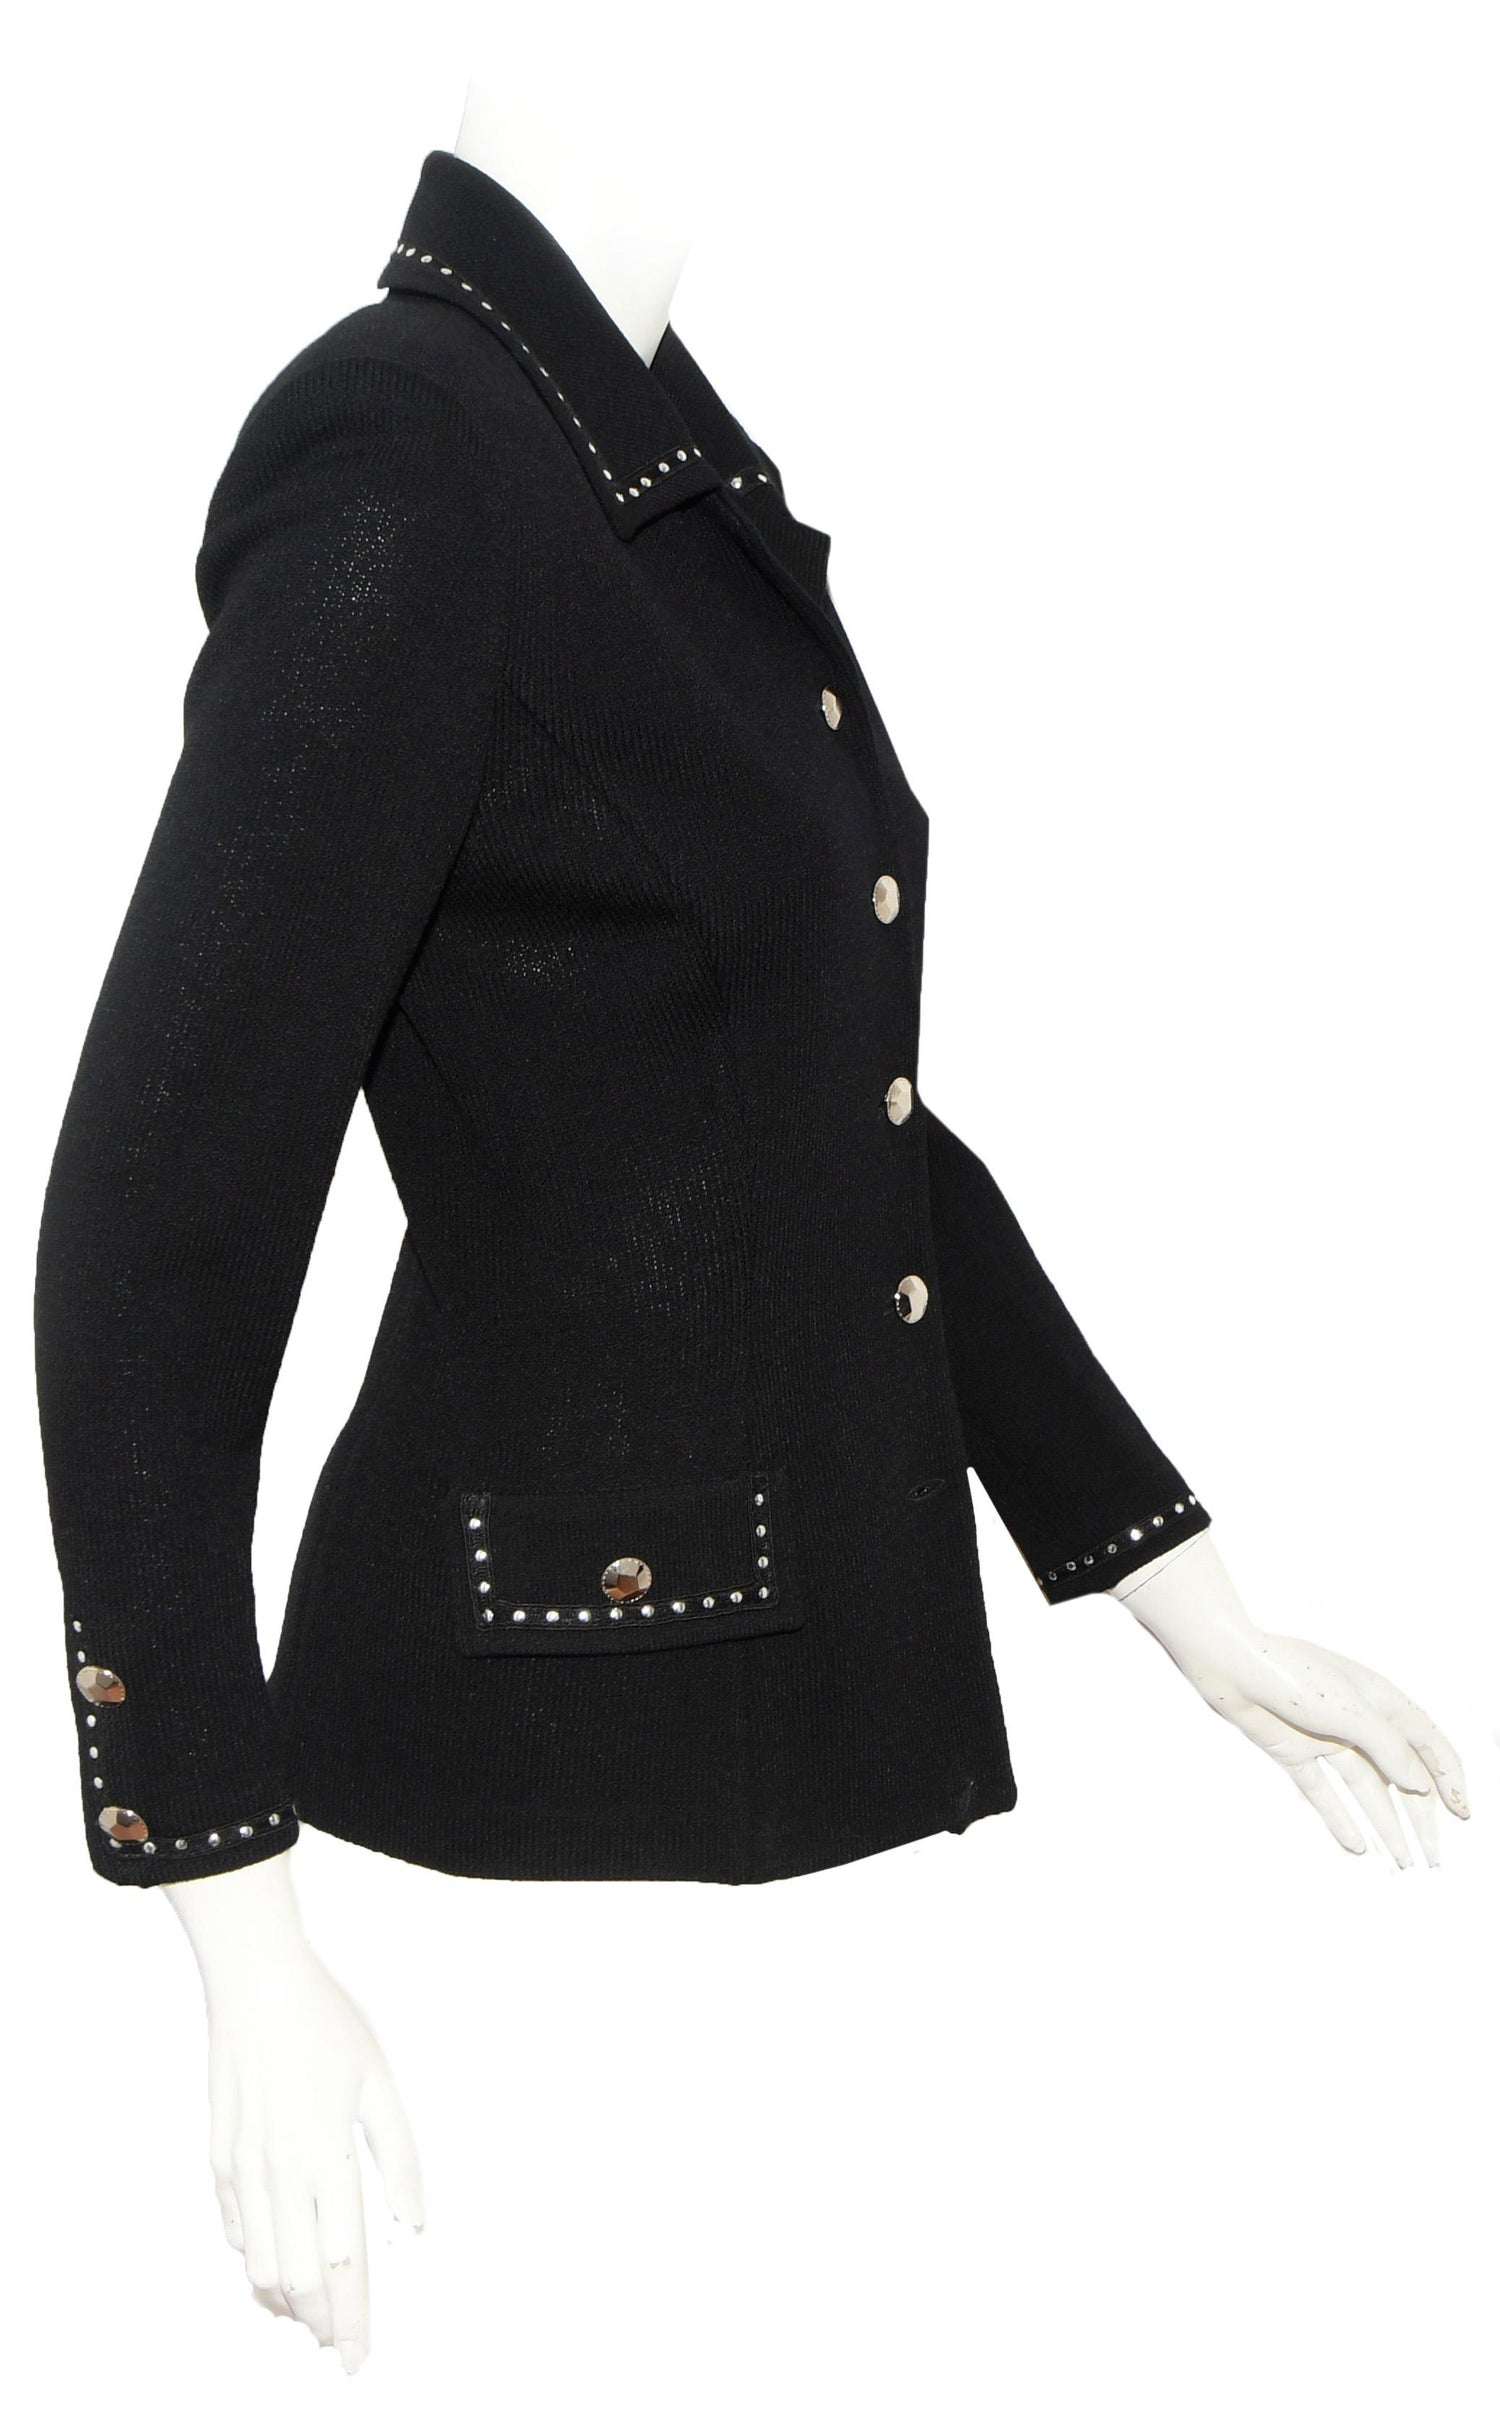 f44b0f4ed St. John Black Knit Silver Tone Stud Decorated Collar Jacket For Sale at  1stdibs